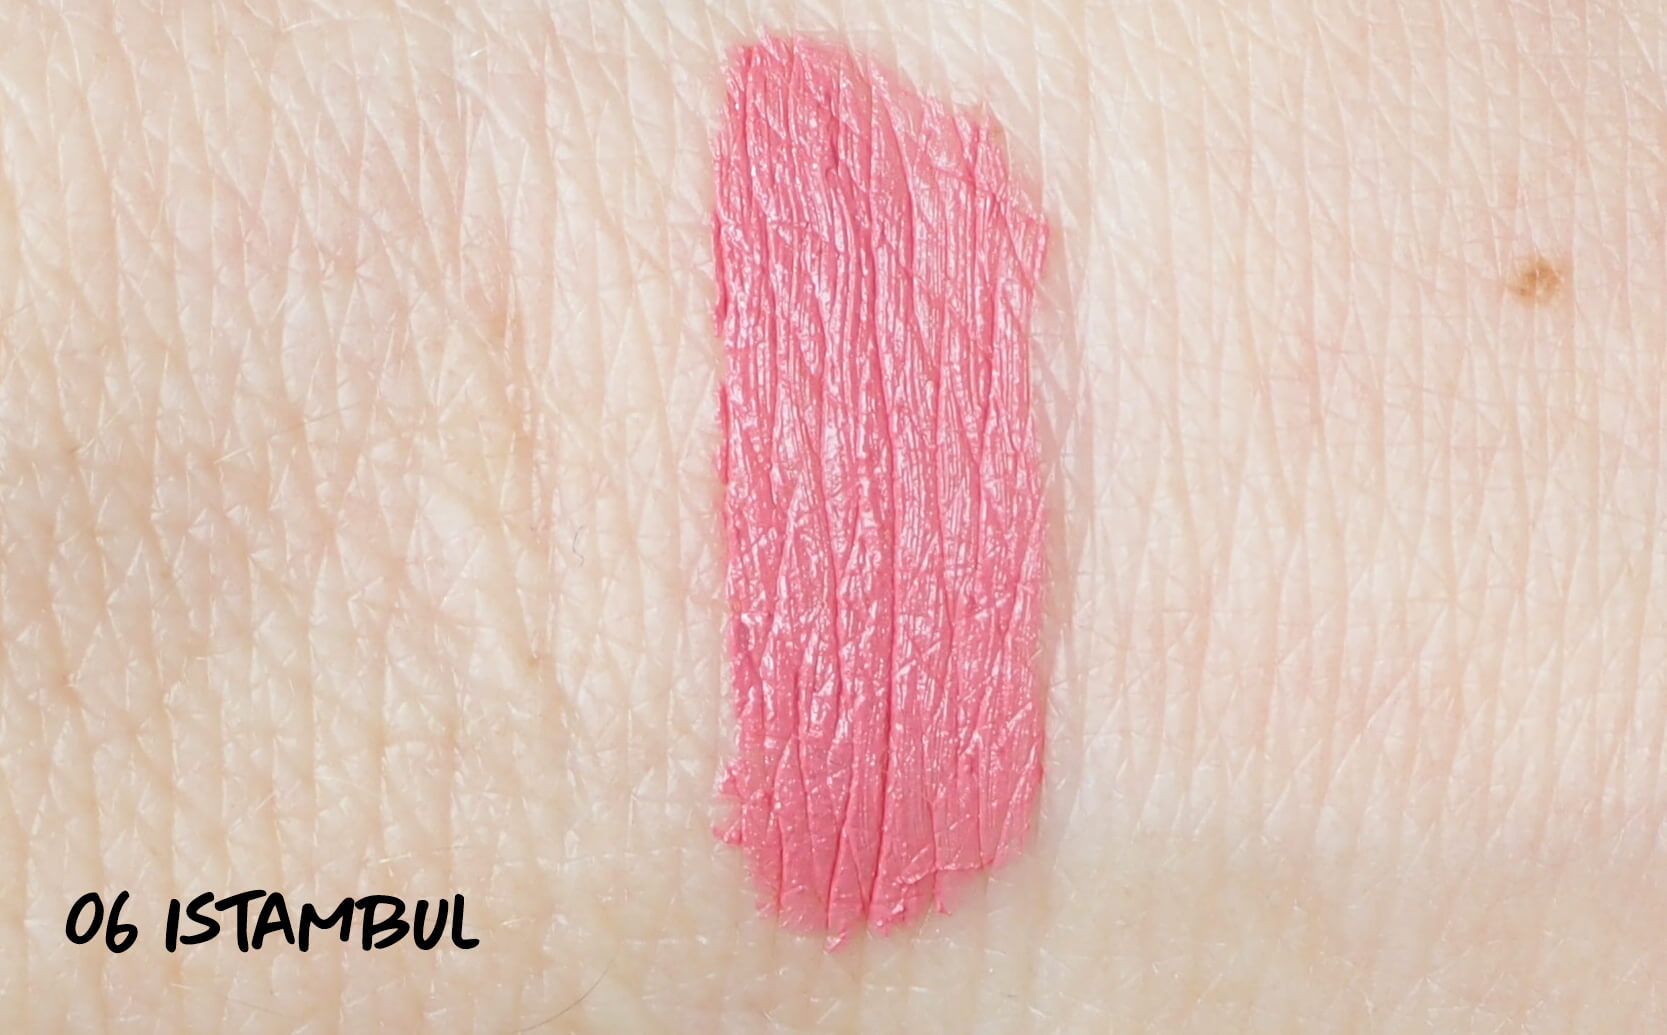 SWATCH ISTAMBUL Soft Matte Lip Cream